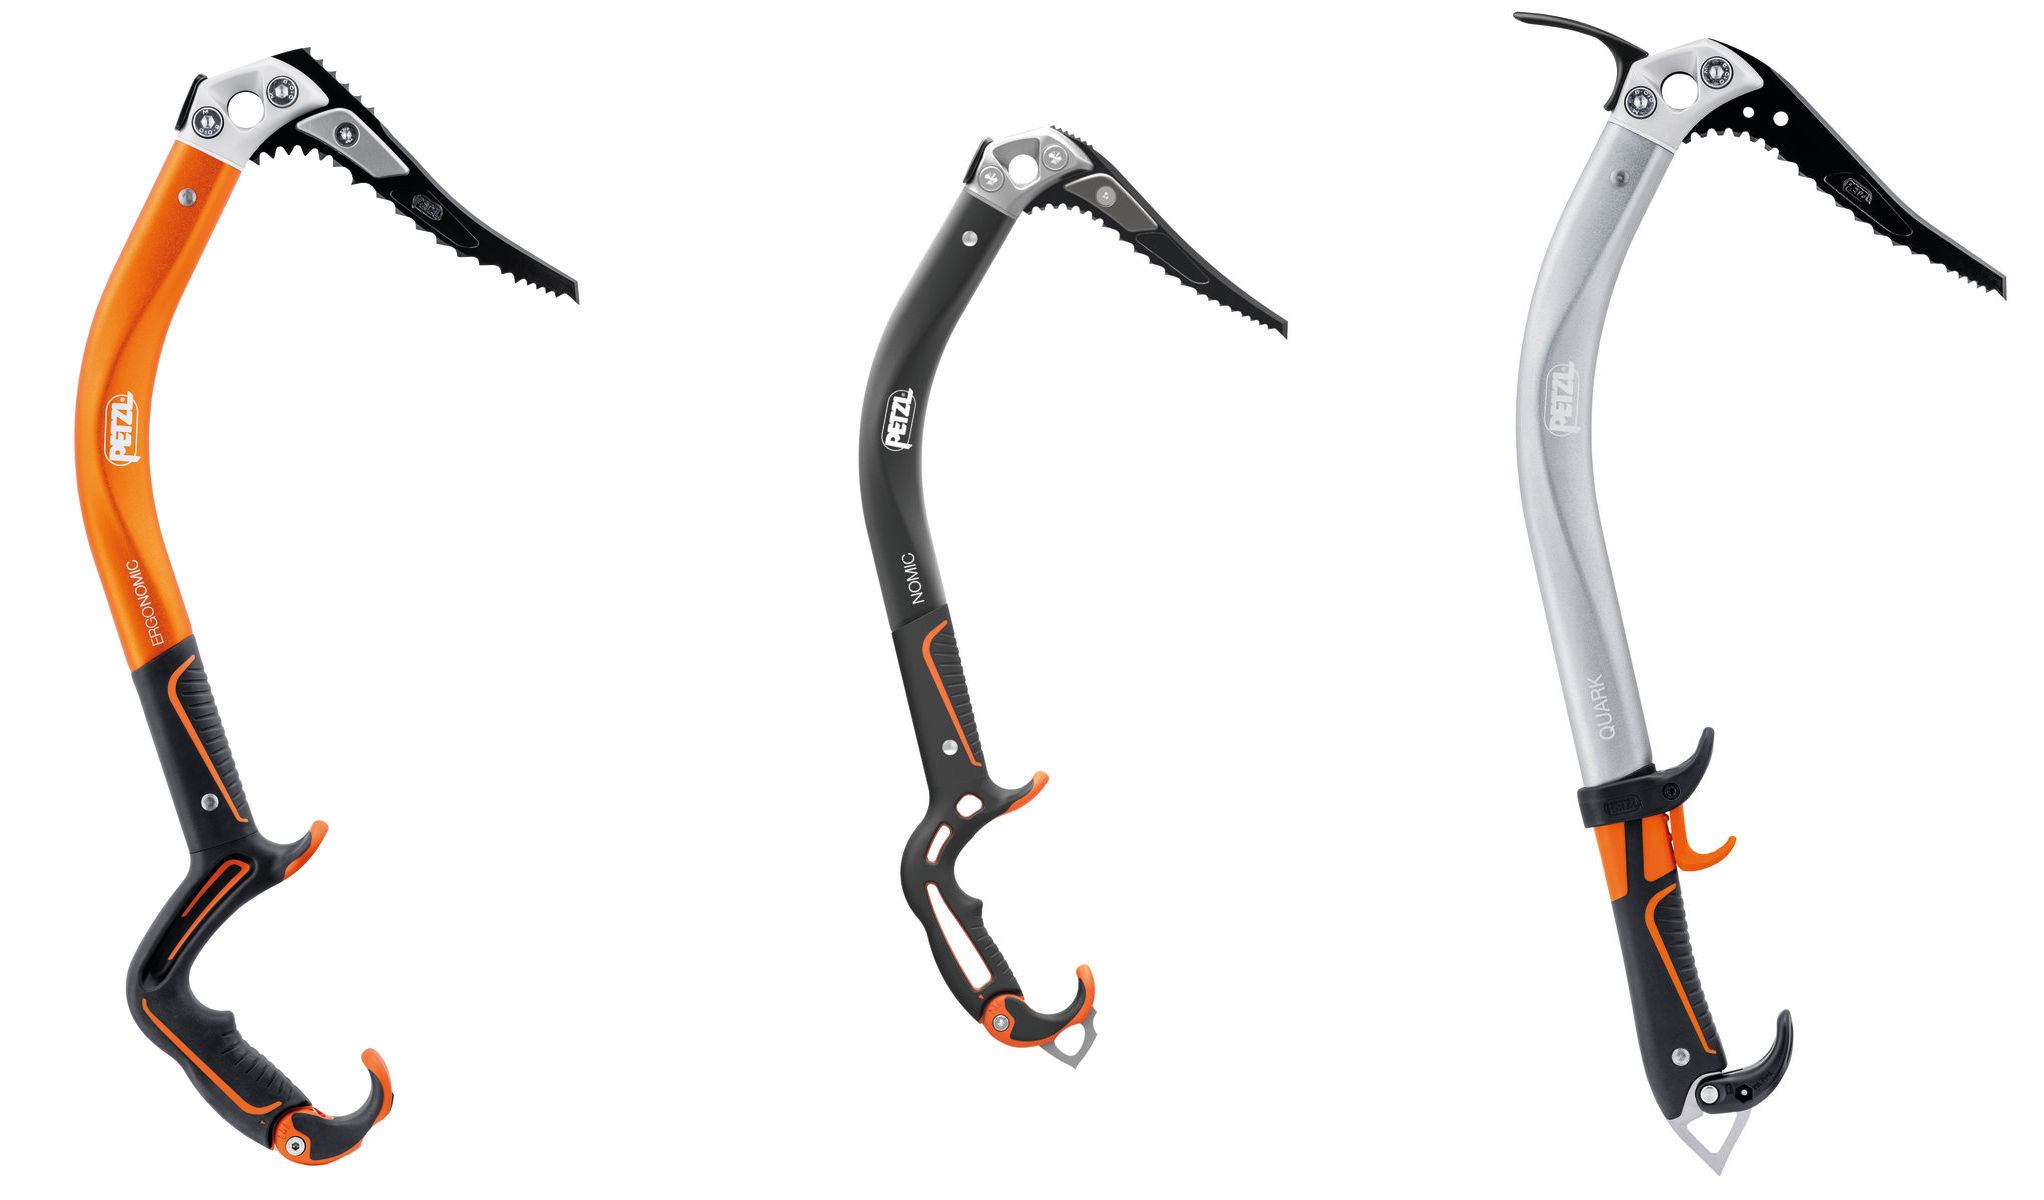 Petzl's Ergonomic, Nomic and Quark ice climbing tools. ©Petzl stock photo